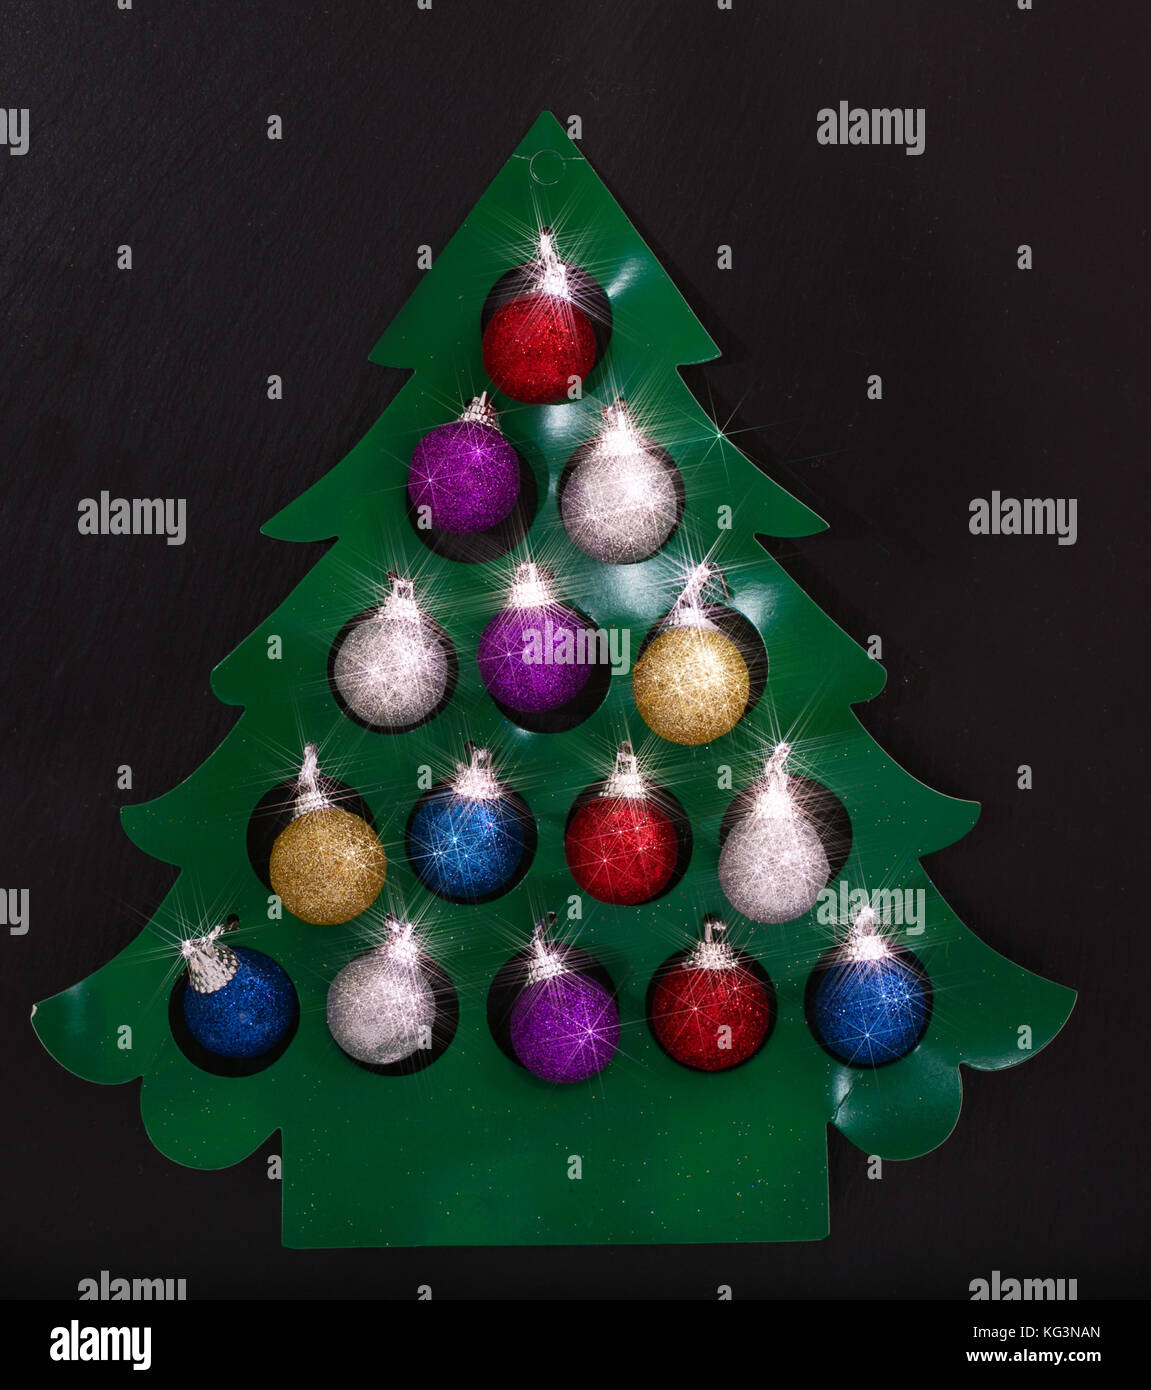 Abstract Triangle Christmas Tree Pattern Stock Photos & Abstract ...